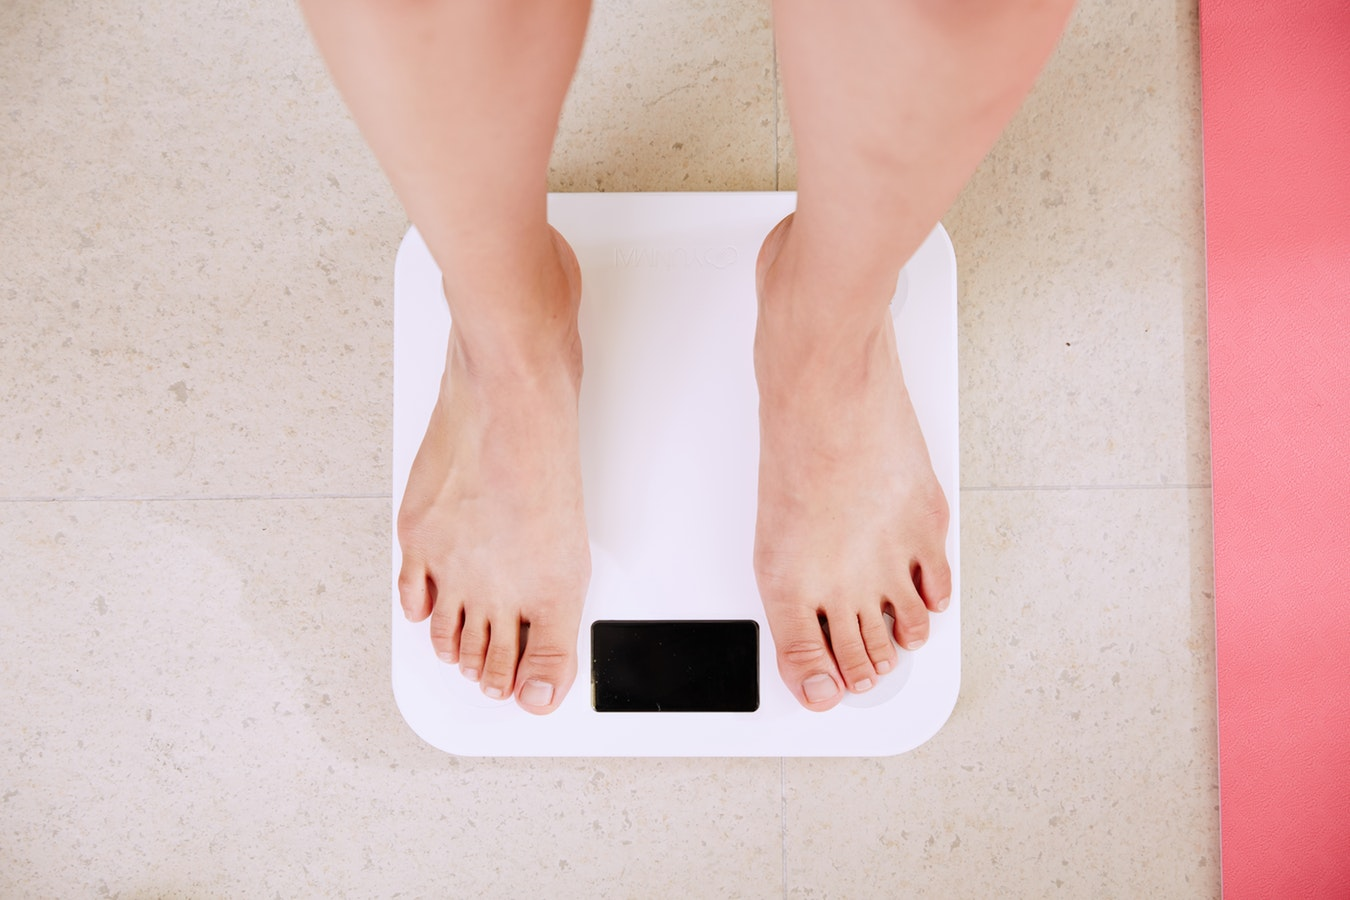 An individual stepping on a scale to keep track of their weight